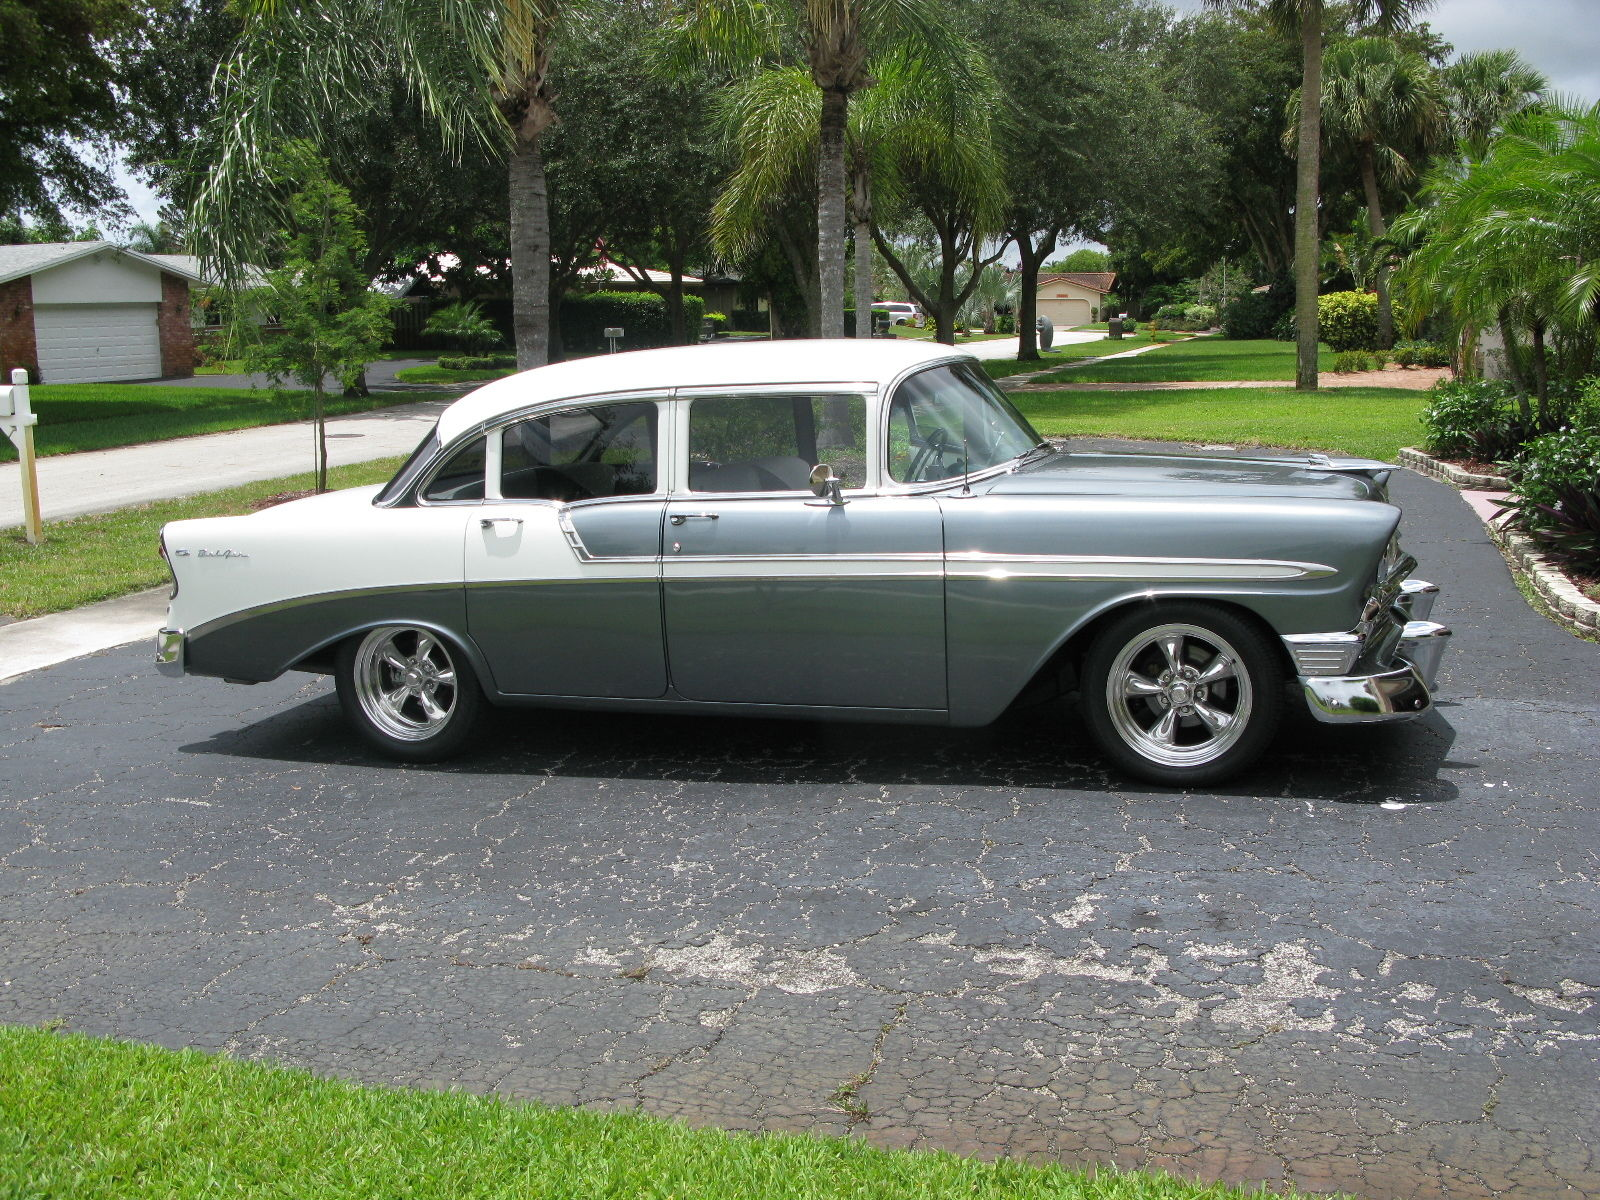 1956 Bel Air 4 Door Sedan Resto Mod Grey and White two tone Restored